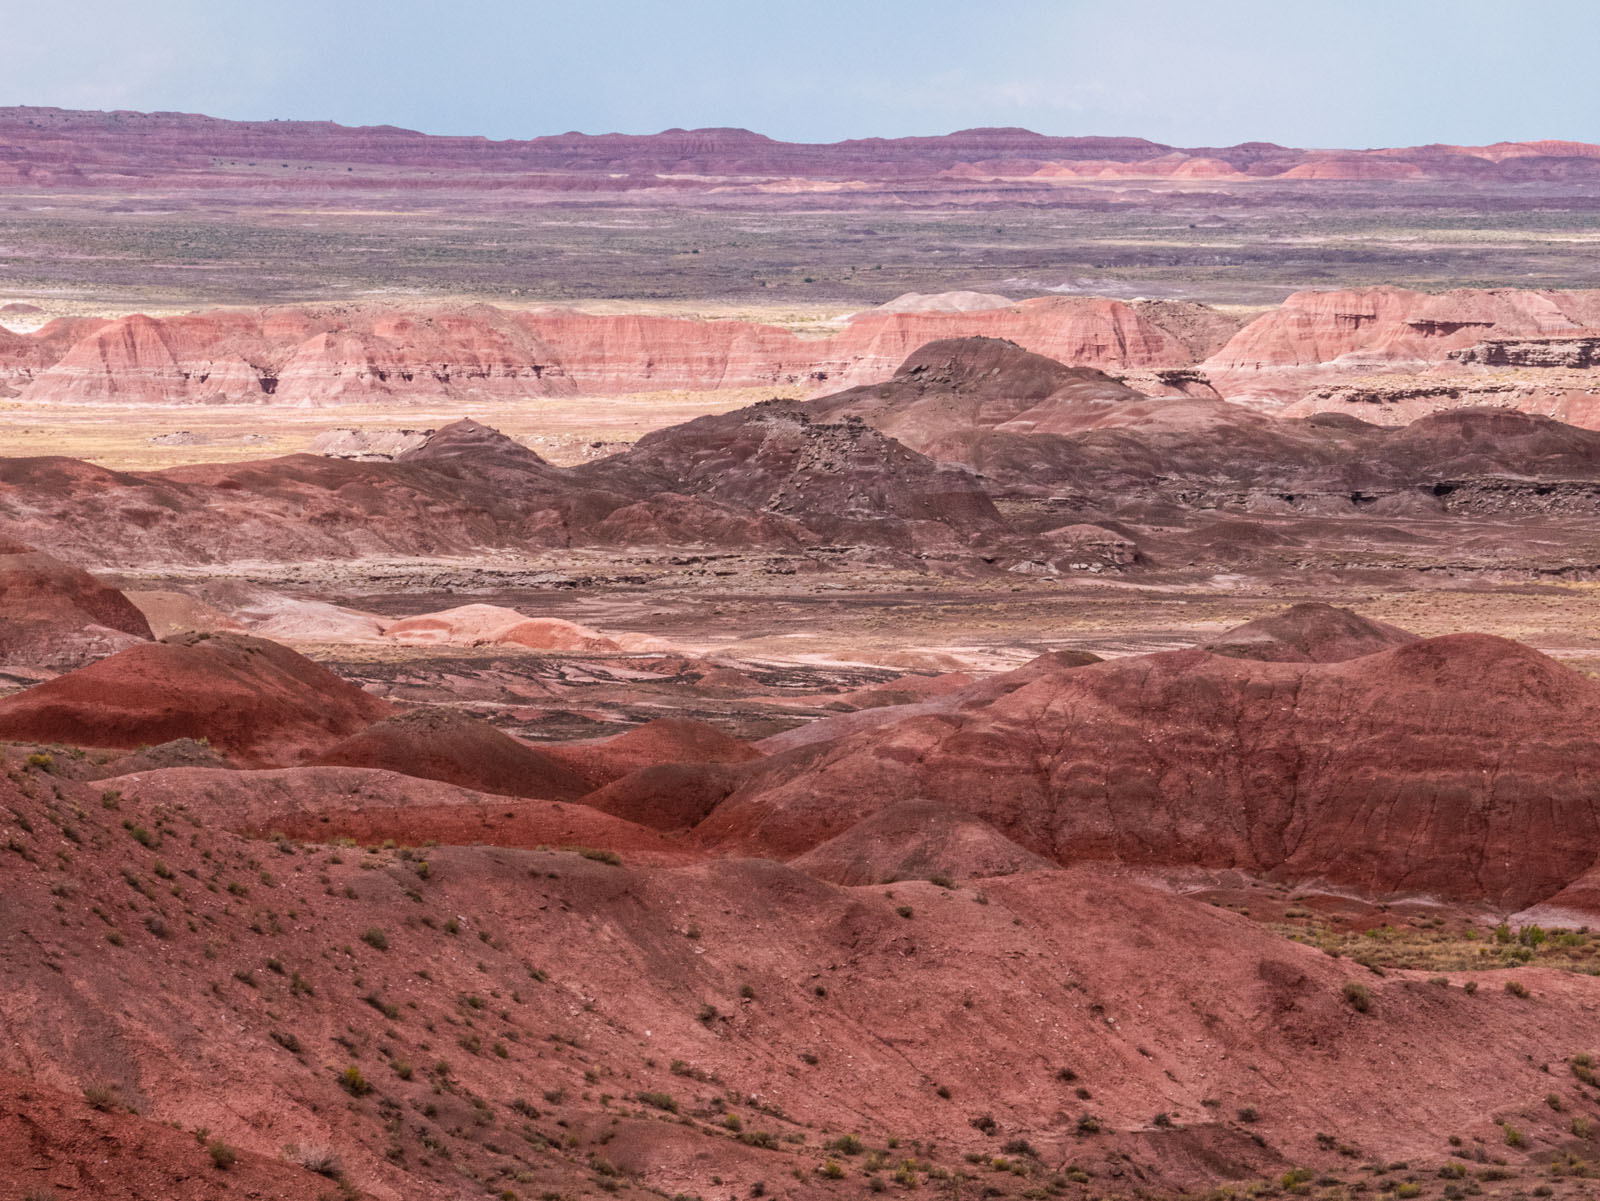 CO_Vacationmoon_PaintedDesert-1010386.jpg